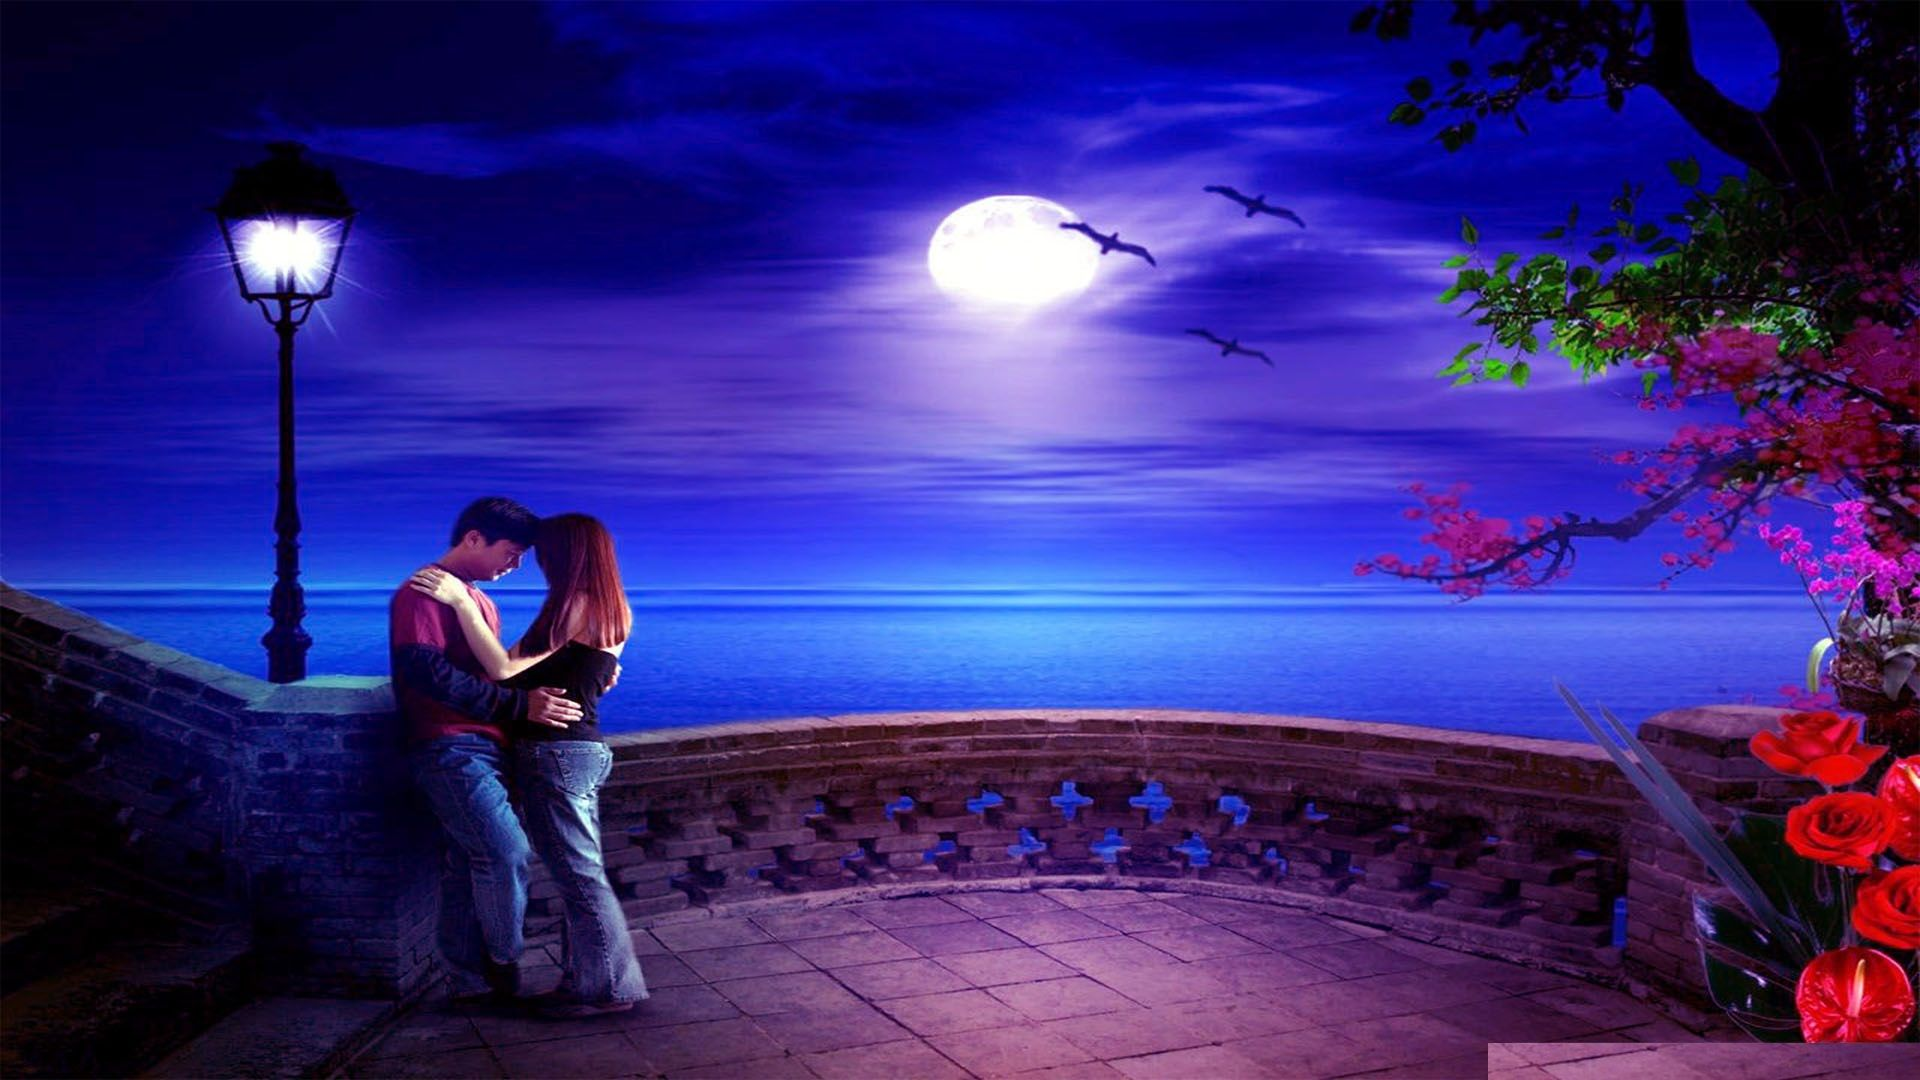 Love Wallpaper Hd Laptop : Romantic Love HD Wallpapers : Find best latest Romantic Love HD Wallpapers for your Pc desktop ...